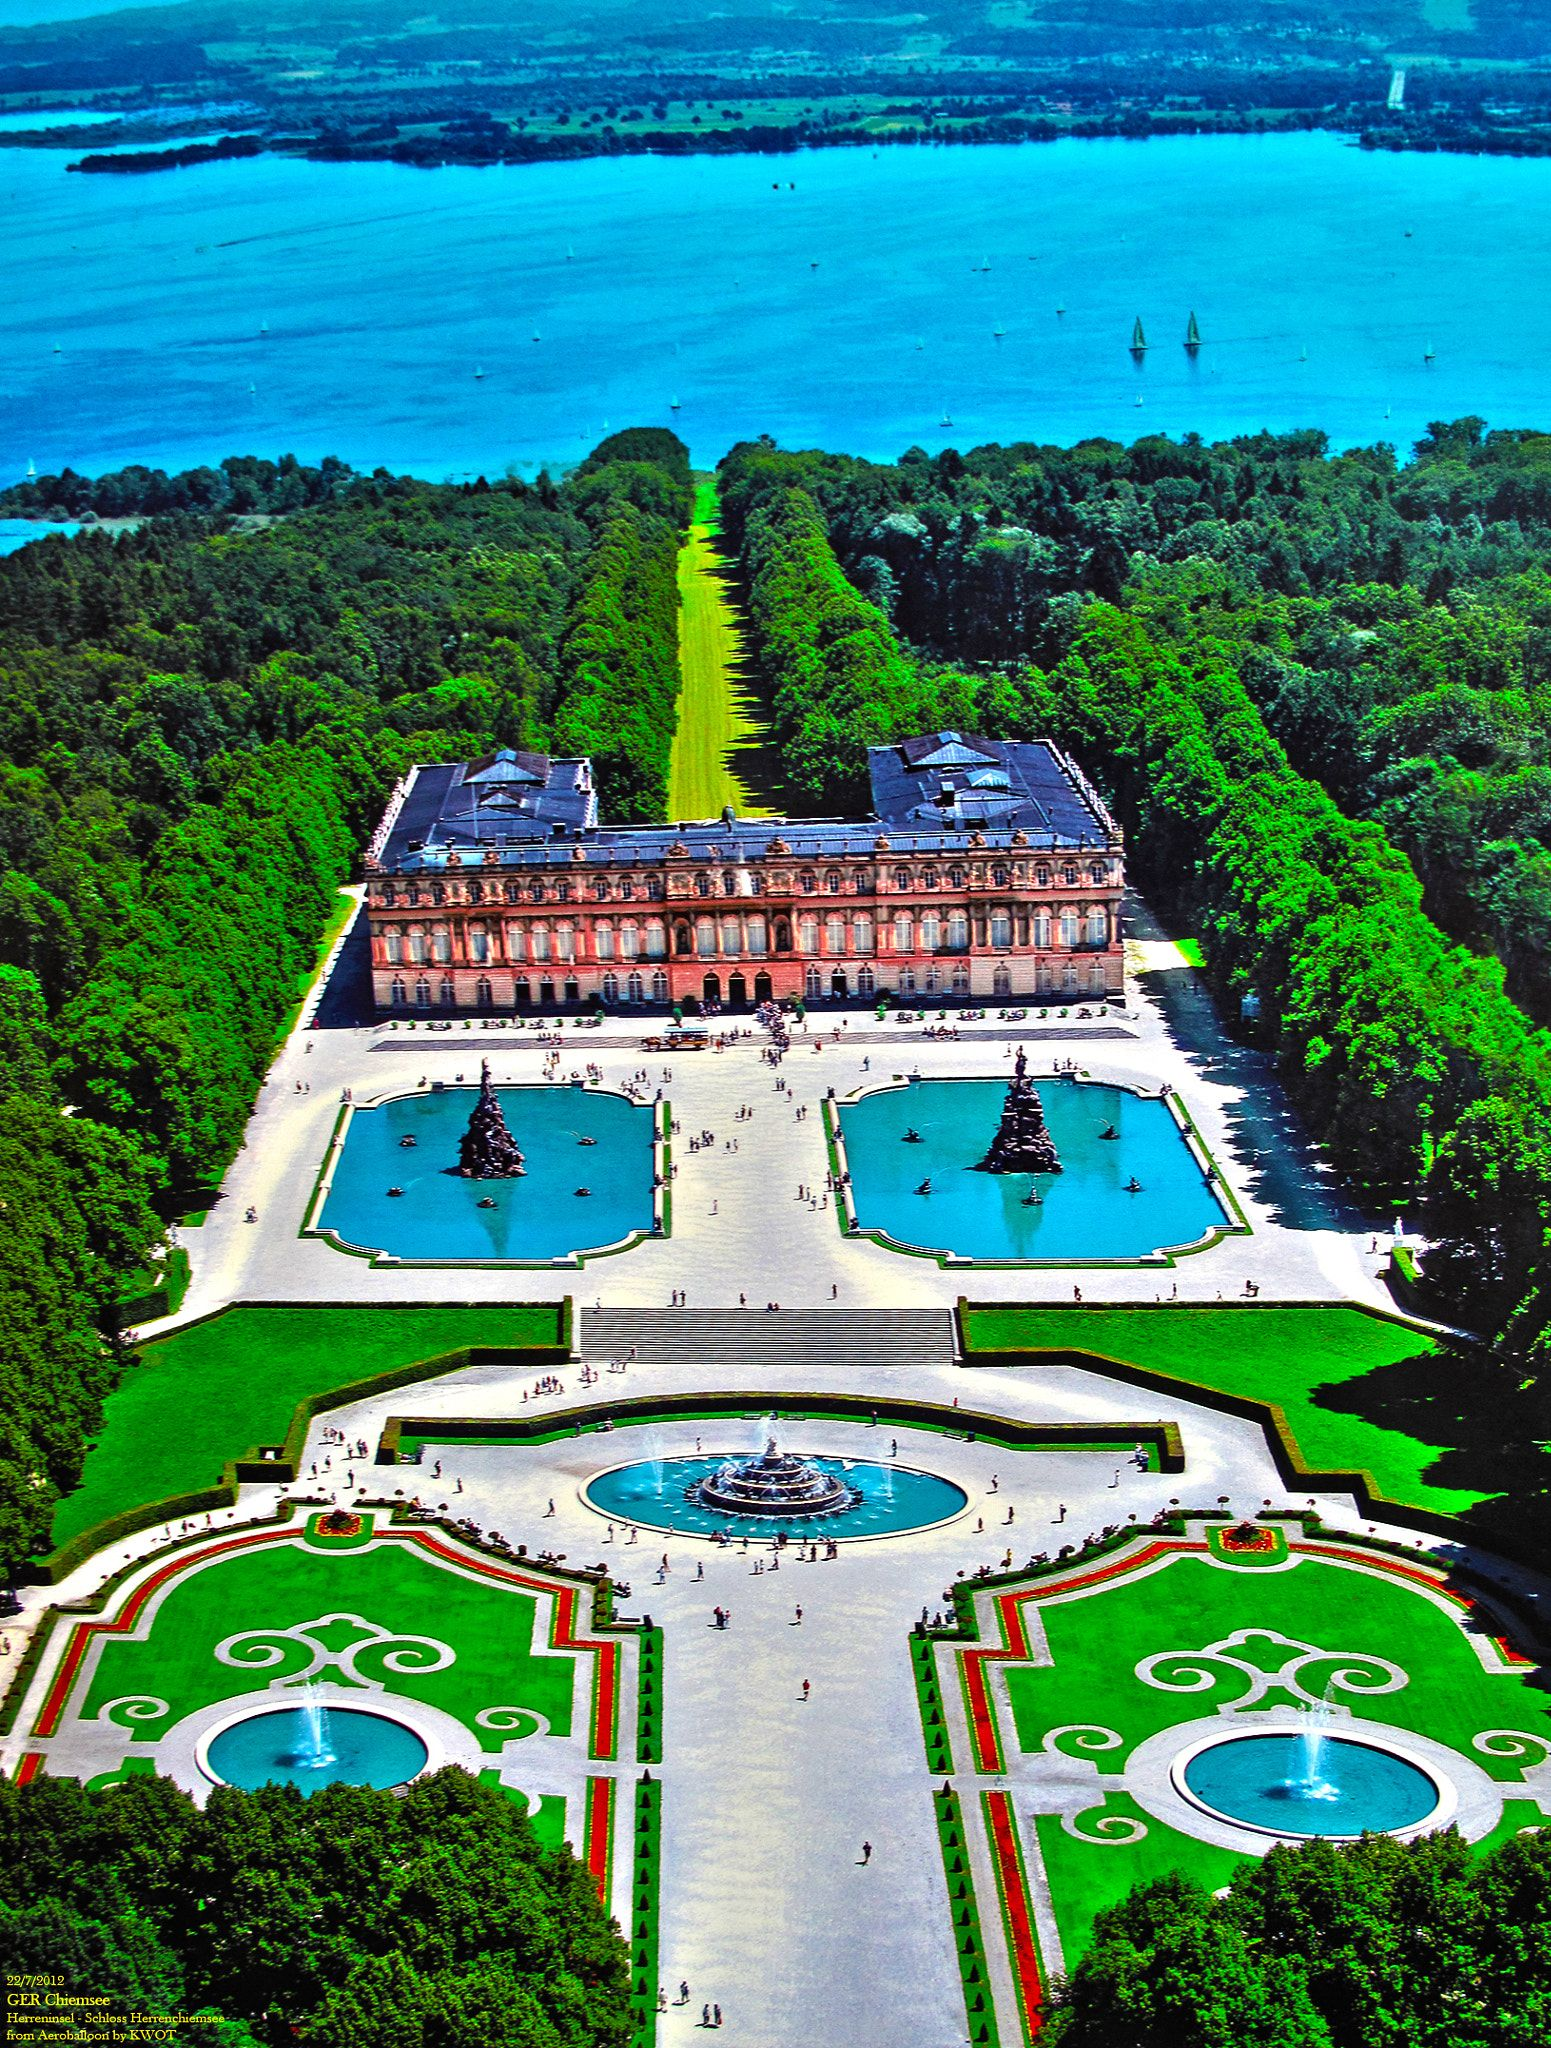 Ger Chiemsee Aero Herreninsel Jul 2012 By Kwot The Beauty From Above Germany Castles Germany Palaces Castle Bavaria